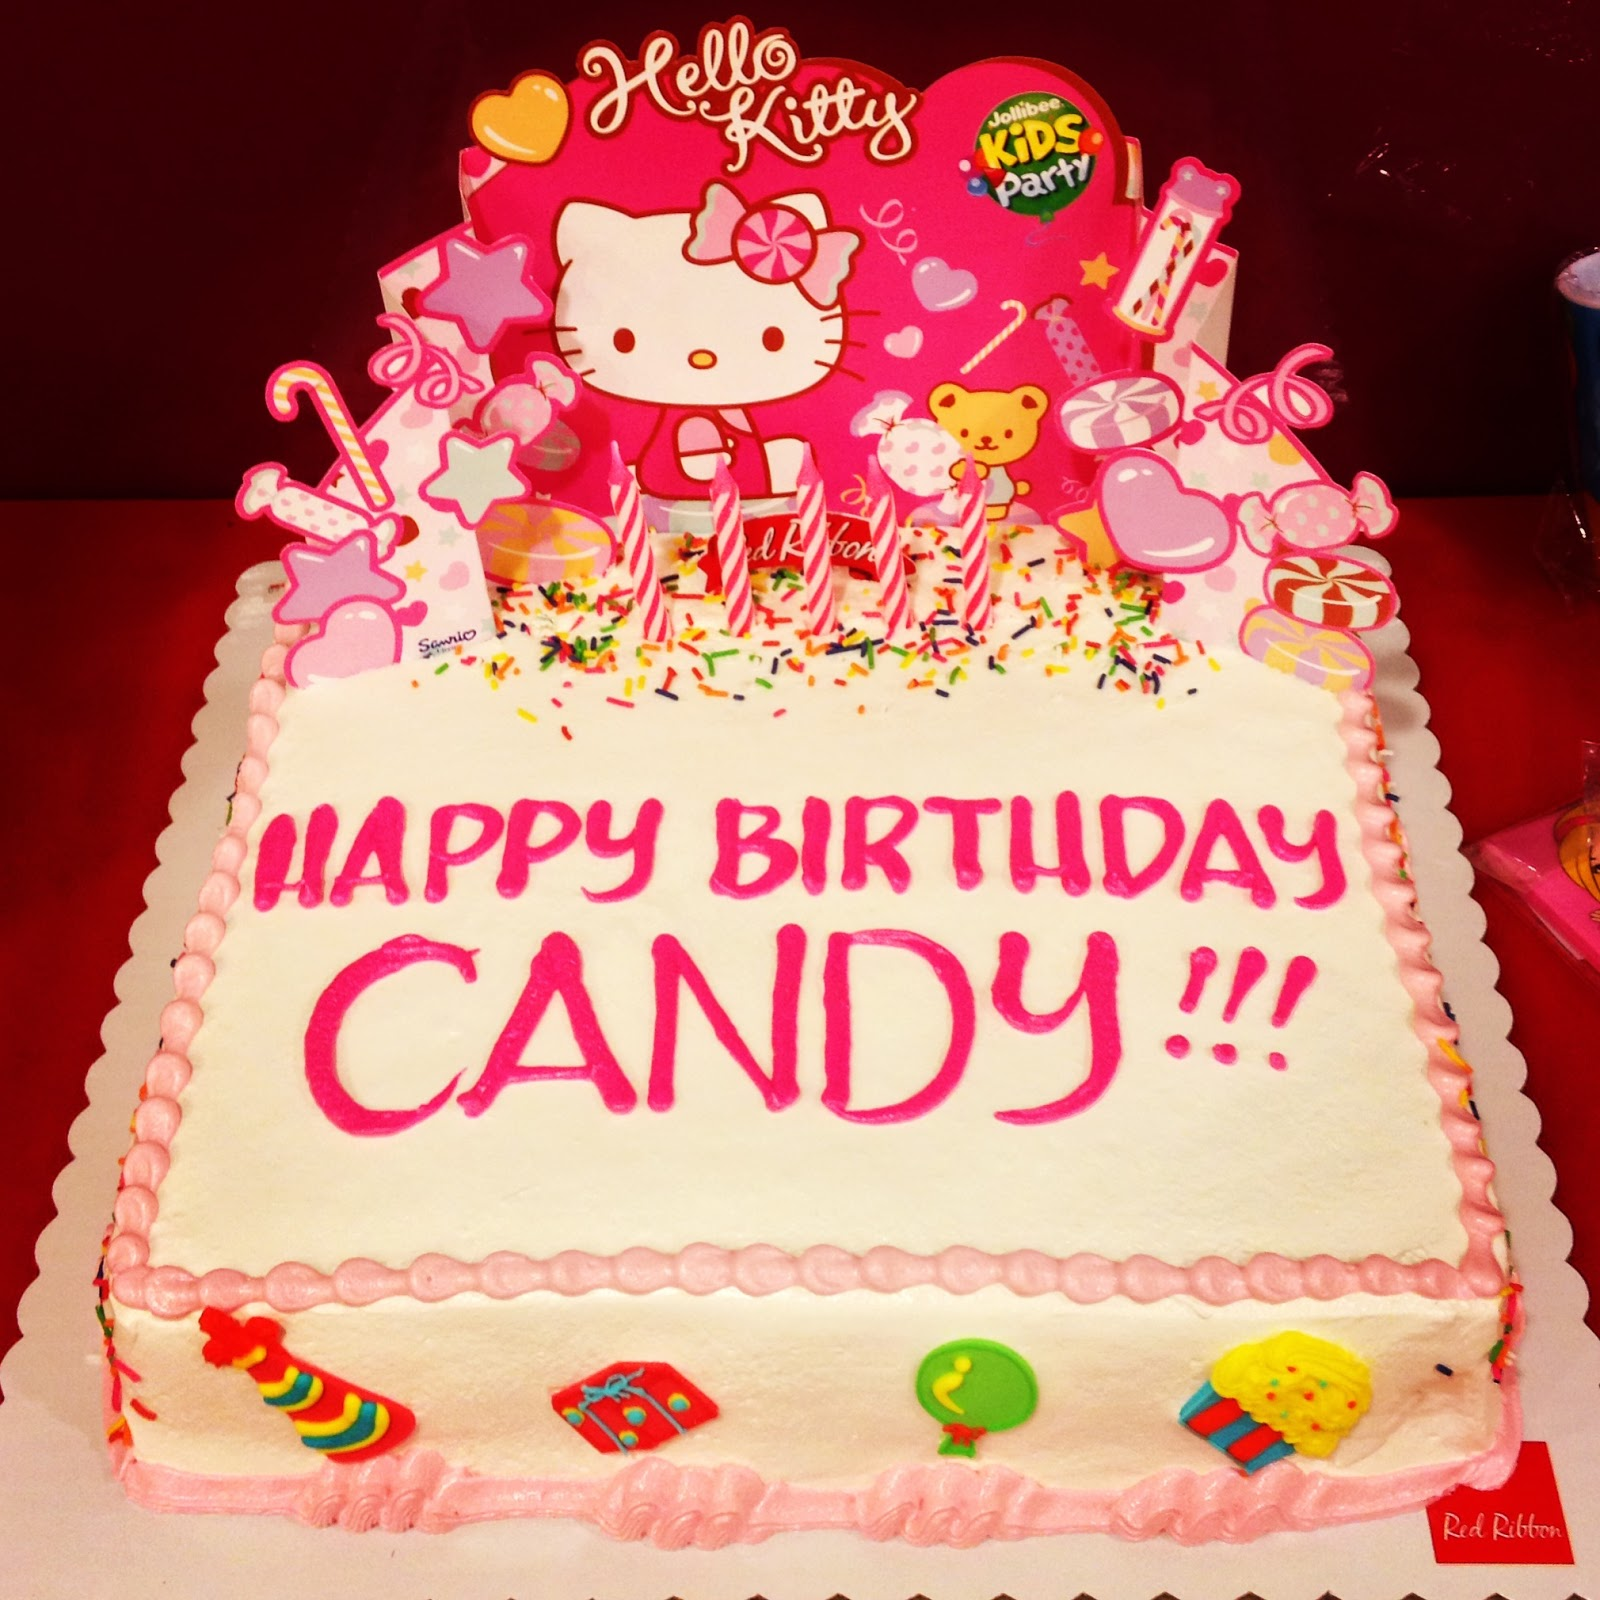 O Kitty Party At Jollibee Cake Design In Red Ribbon Birthday